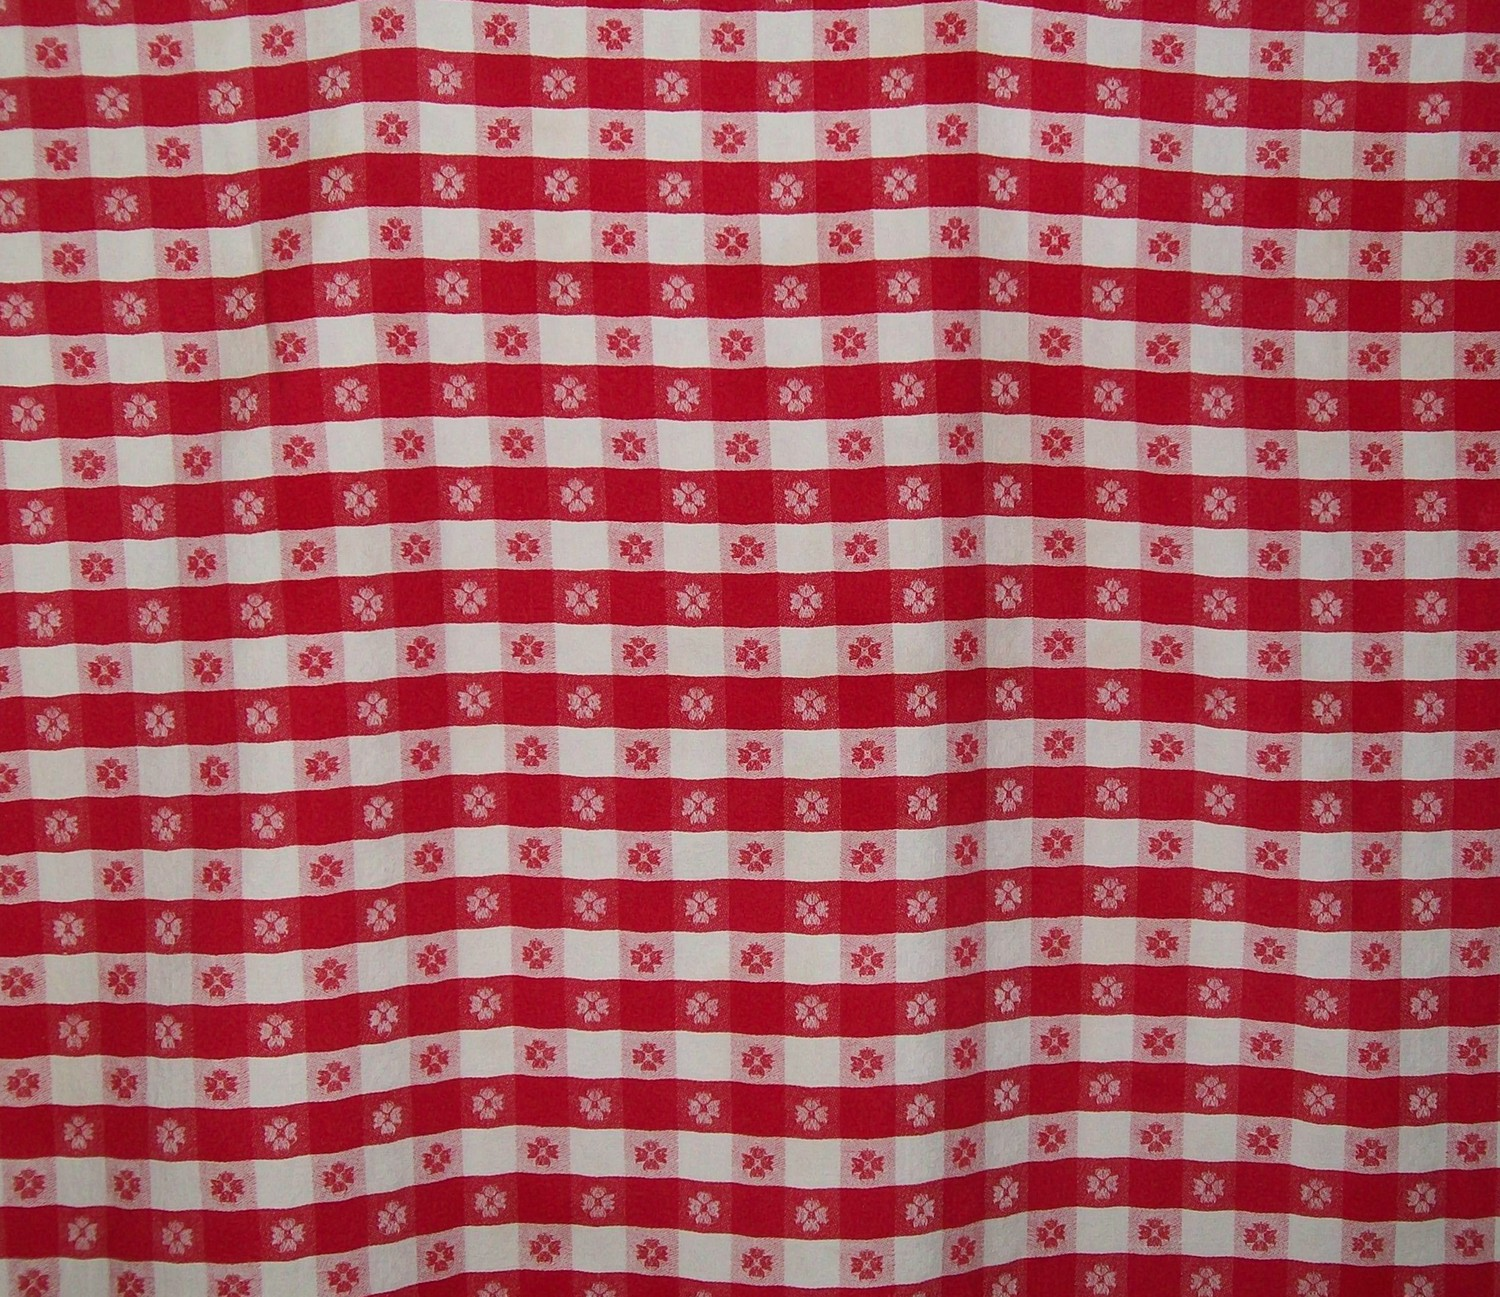 Red And White Checkered Background Red And White Checkered 1500x1297